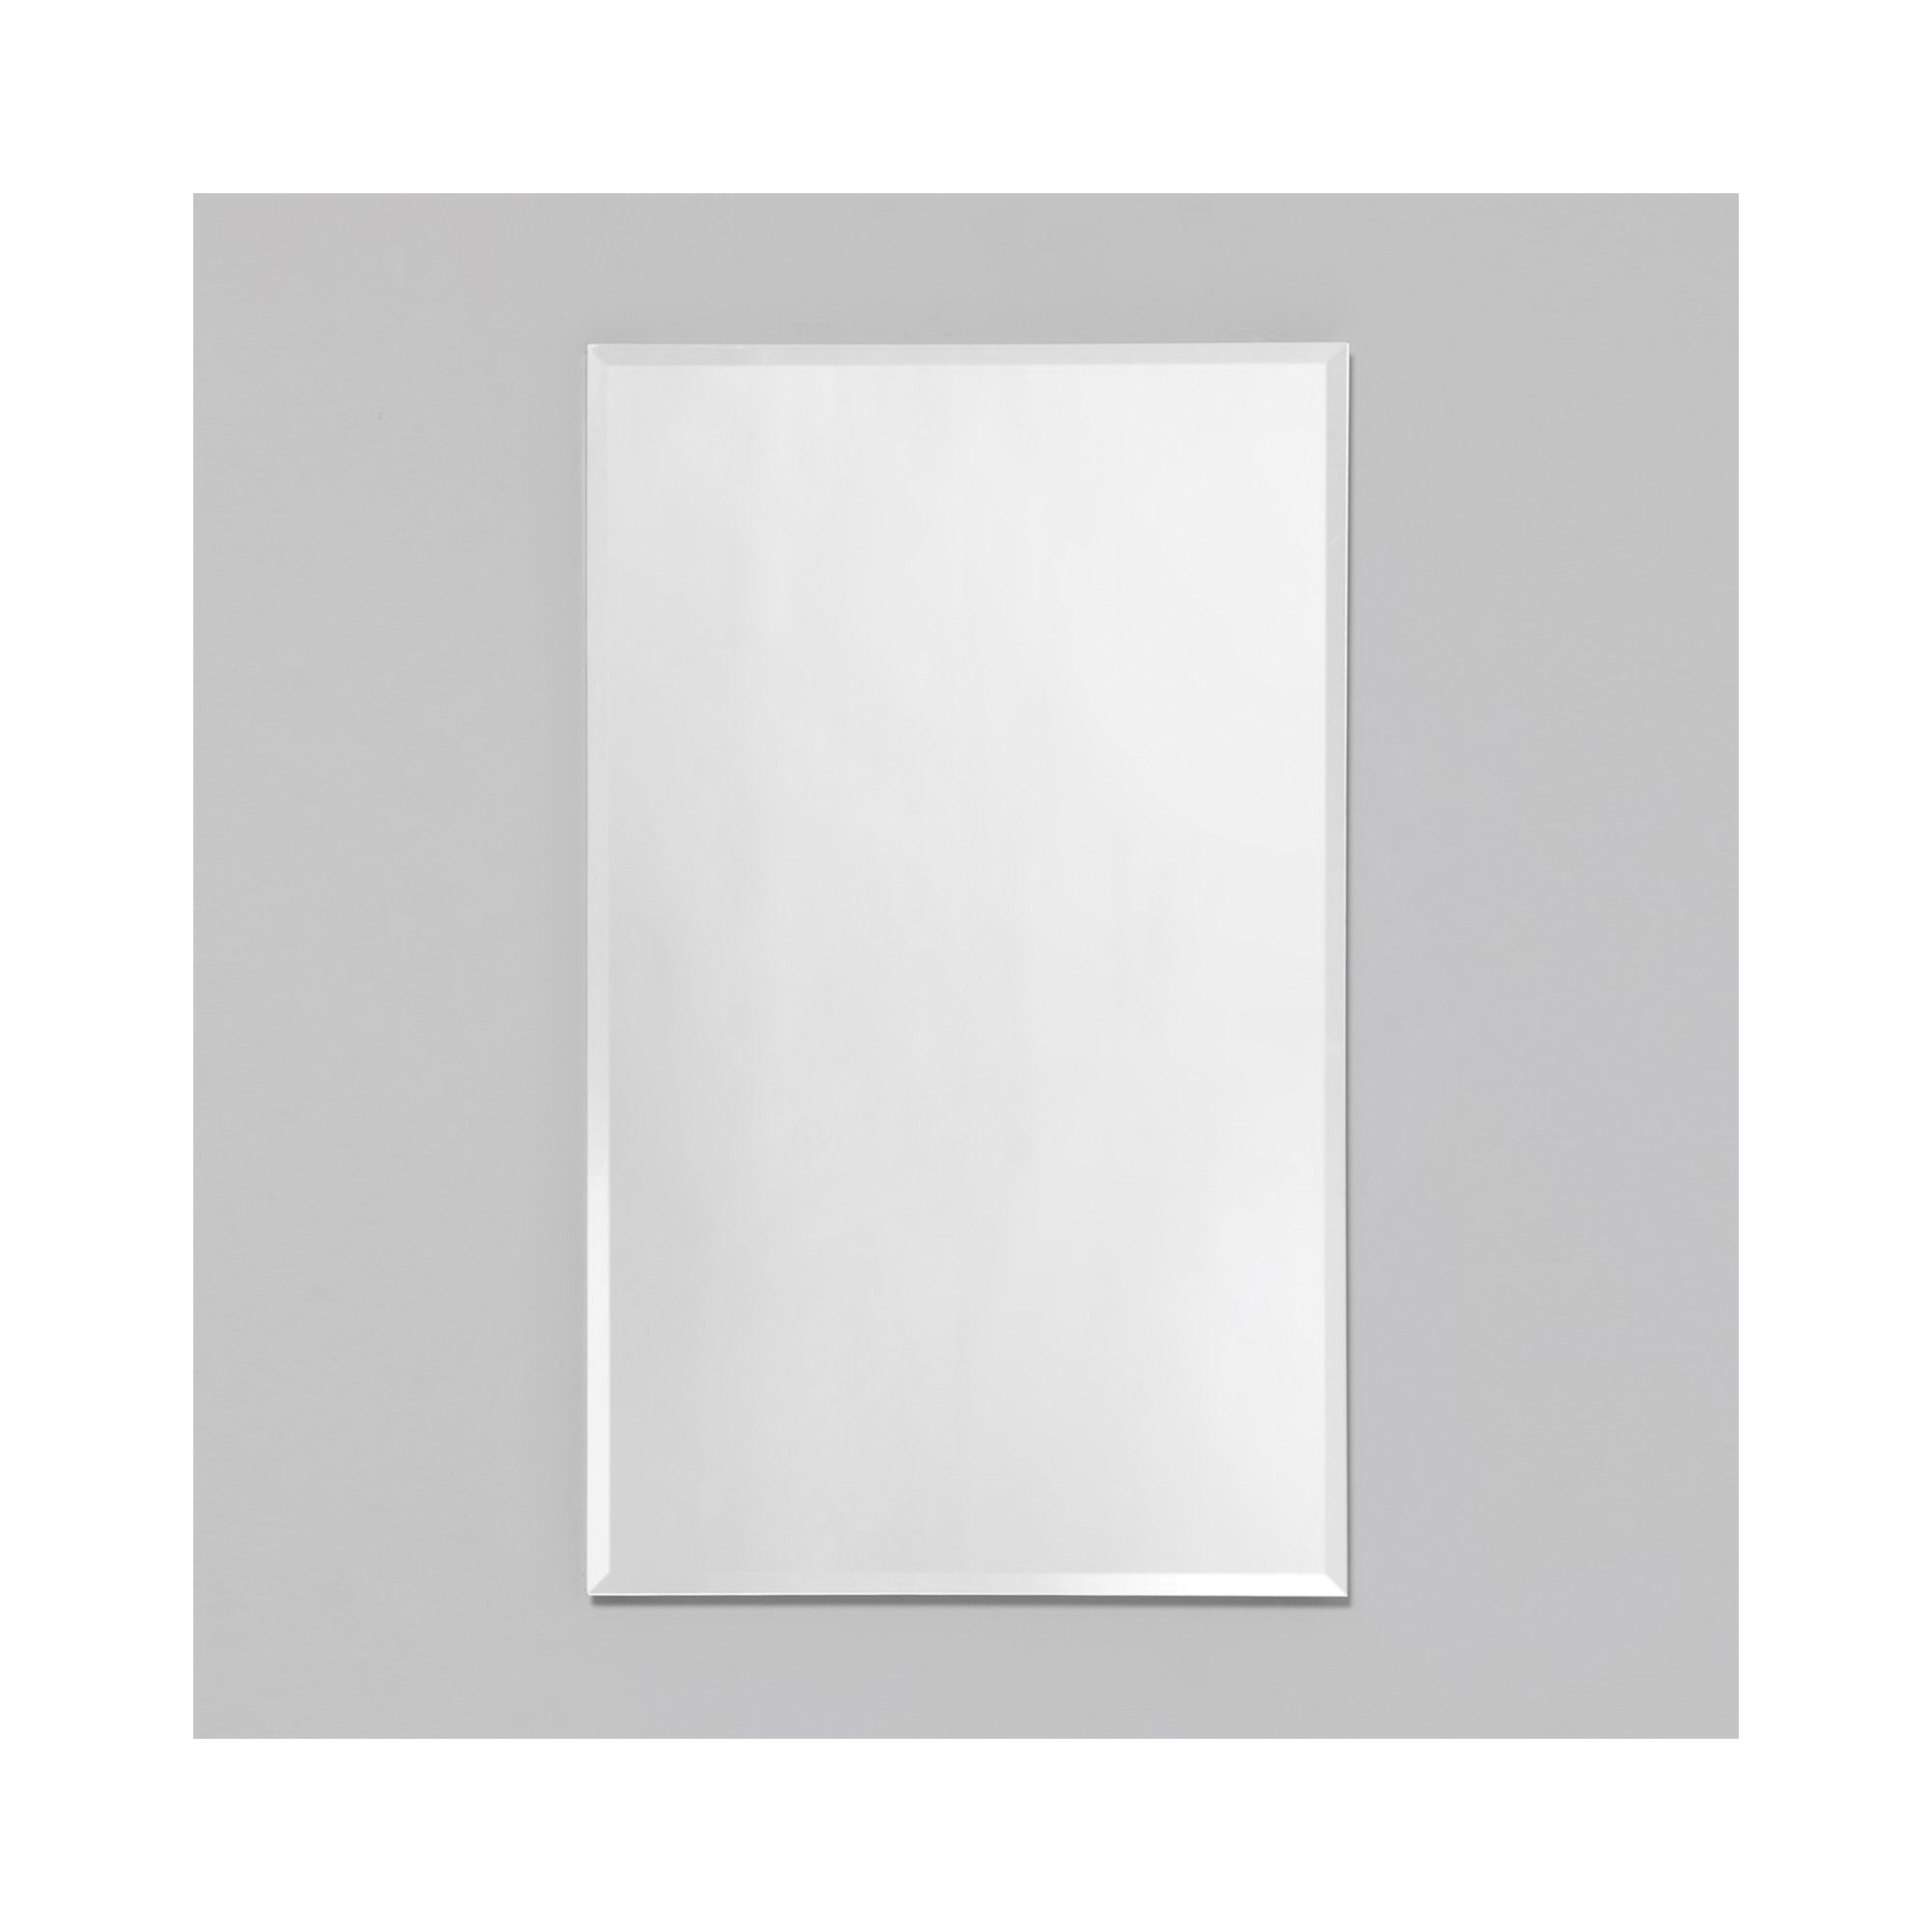 Robern® RC2426D4FP1 R3 Series Single Door Medicine Cabinet With Interior Polished Edge Front Mirror, 24 in OAW x 26 in OAH, Aluminum, Satin Anodized